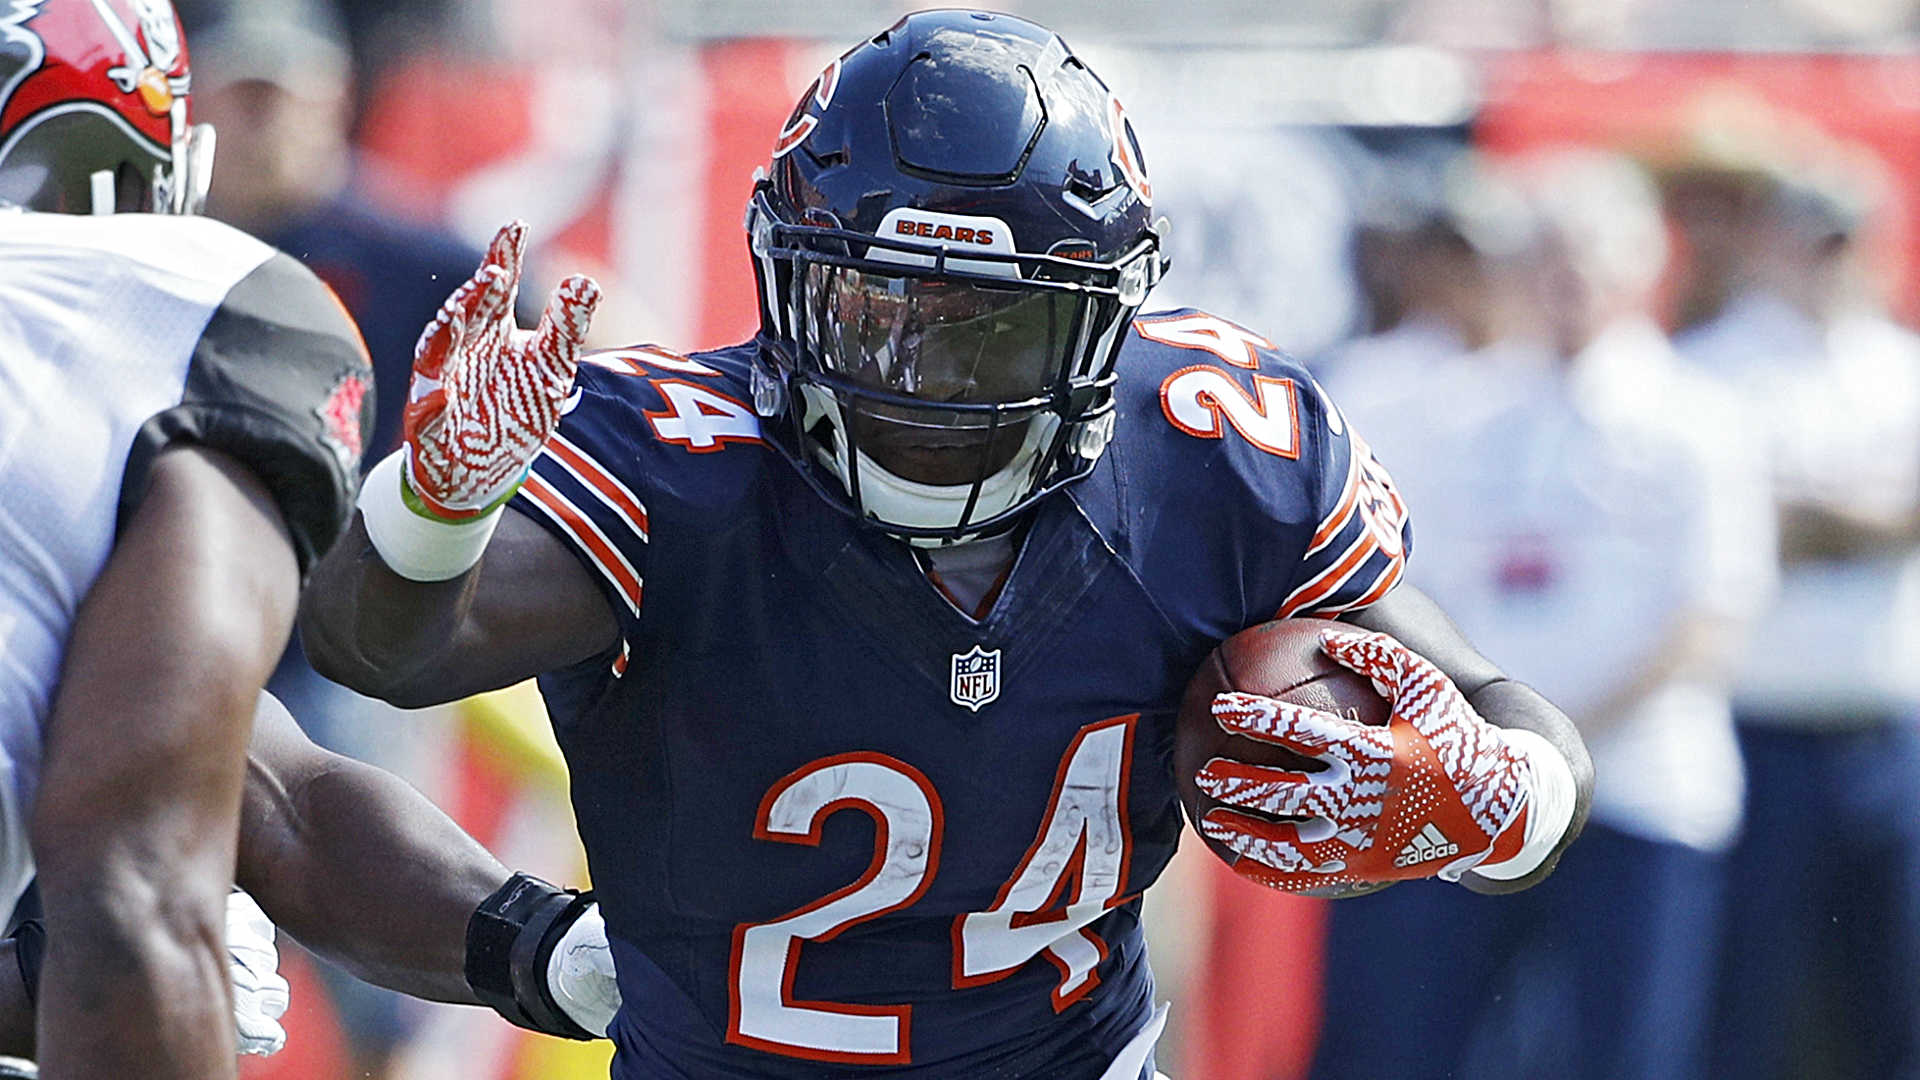 Martellus Bennett won't play against Chicago